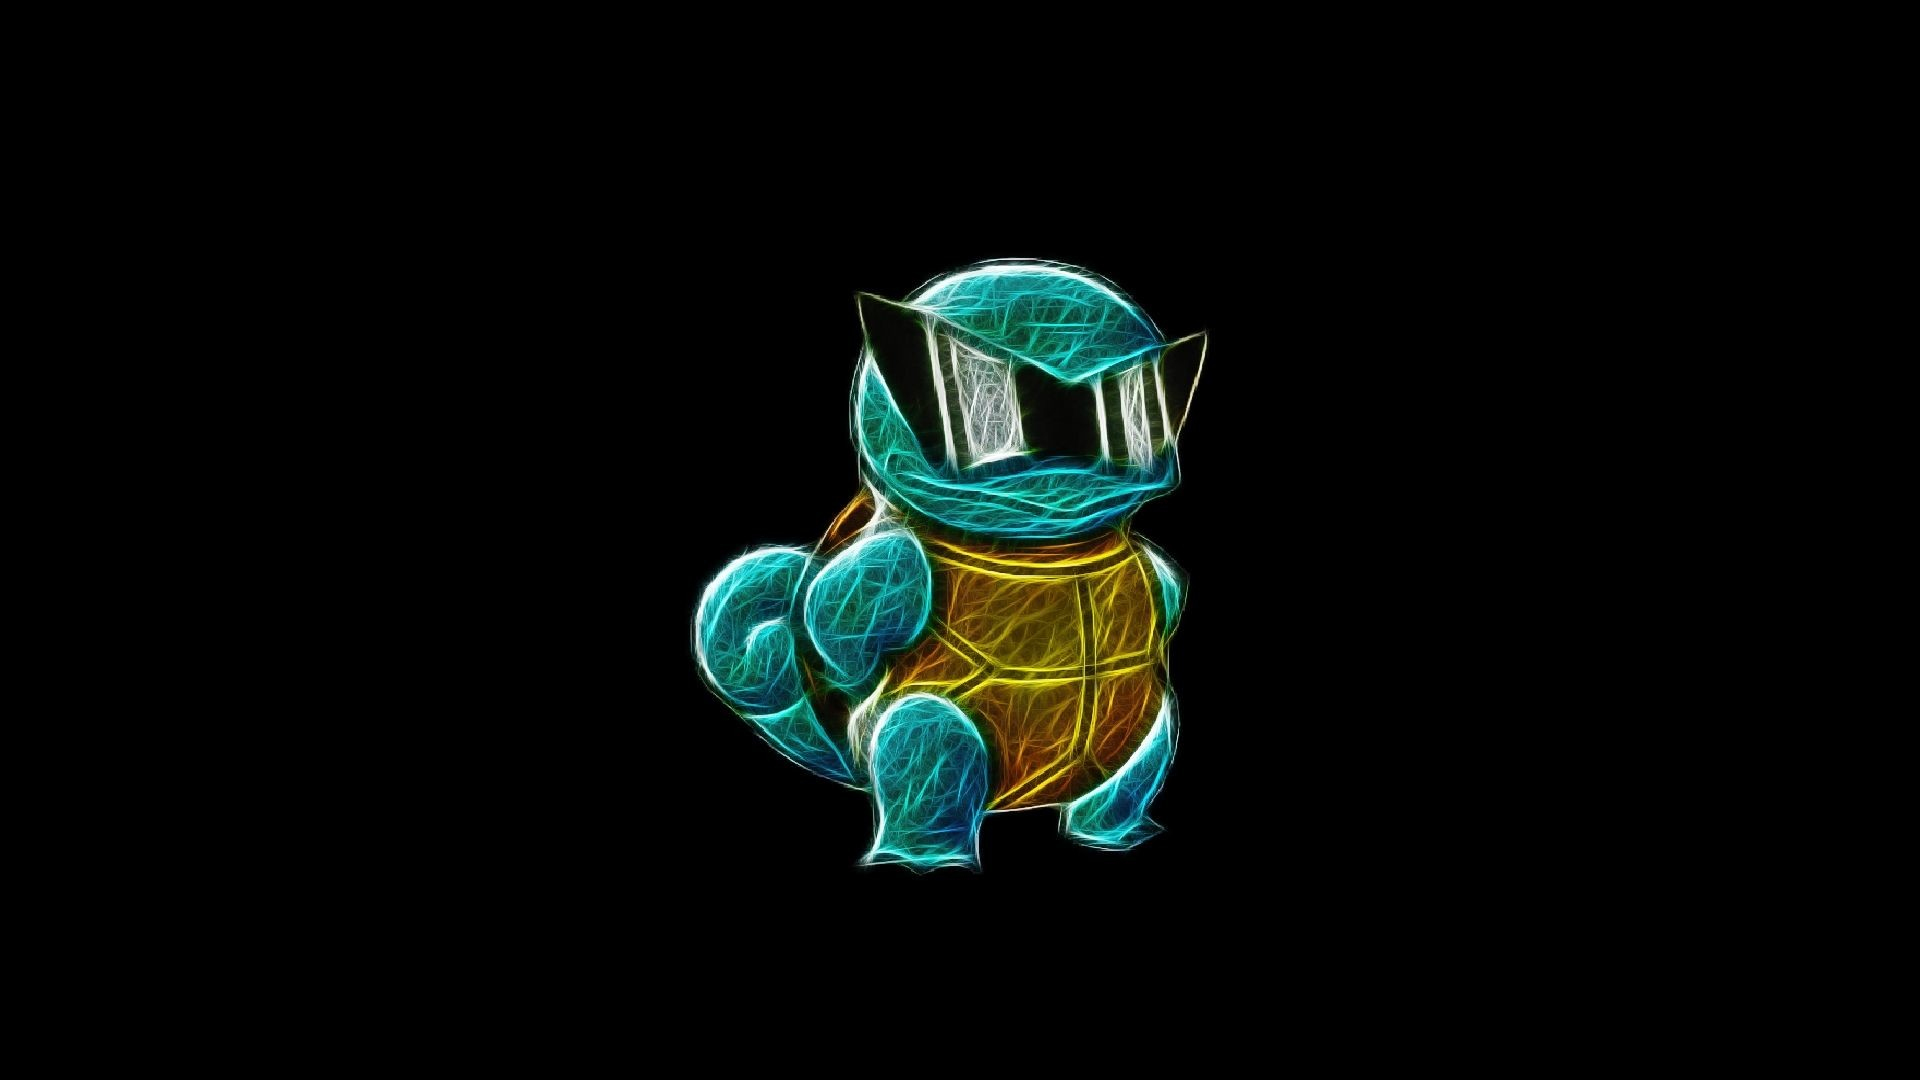 Res: 1920x1080, Squirtle Wallpaper